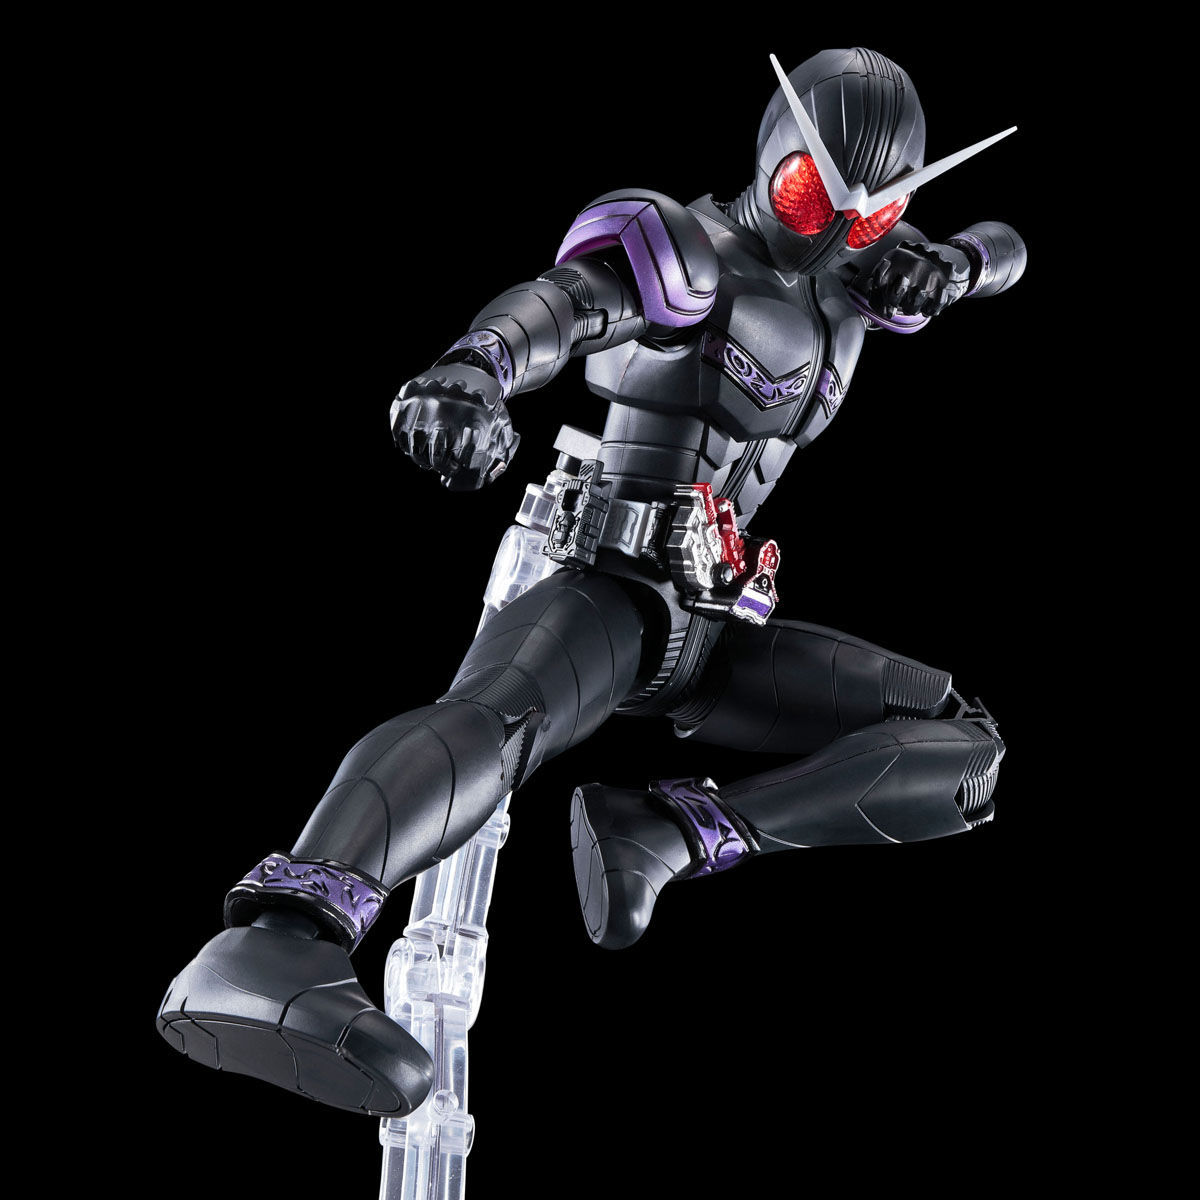 Figure-rise Standard 仮面ライダージョーカー09